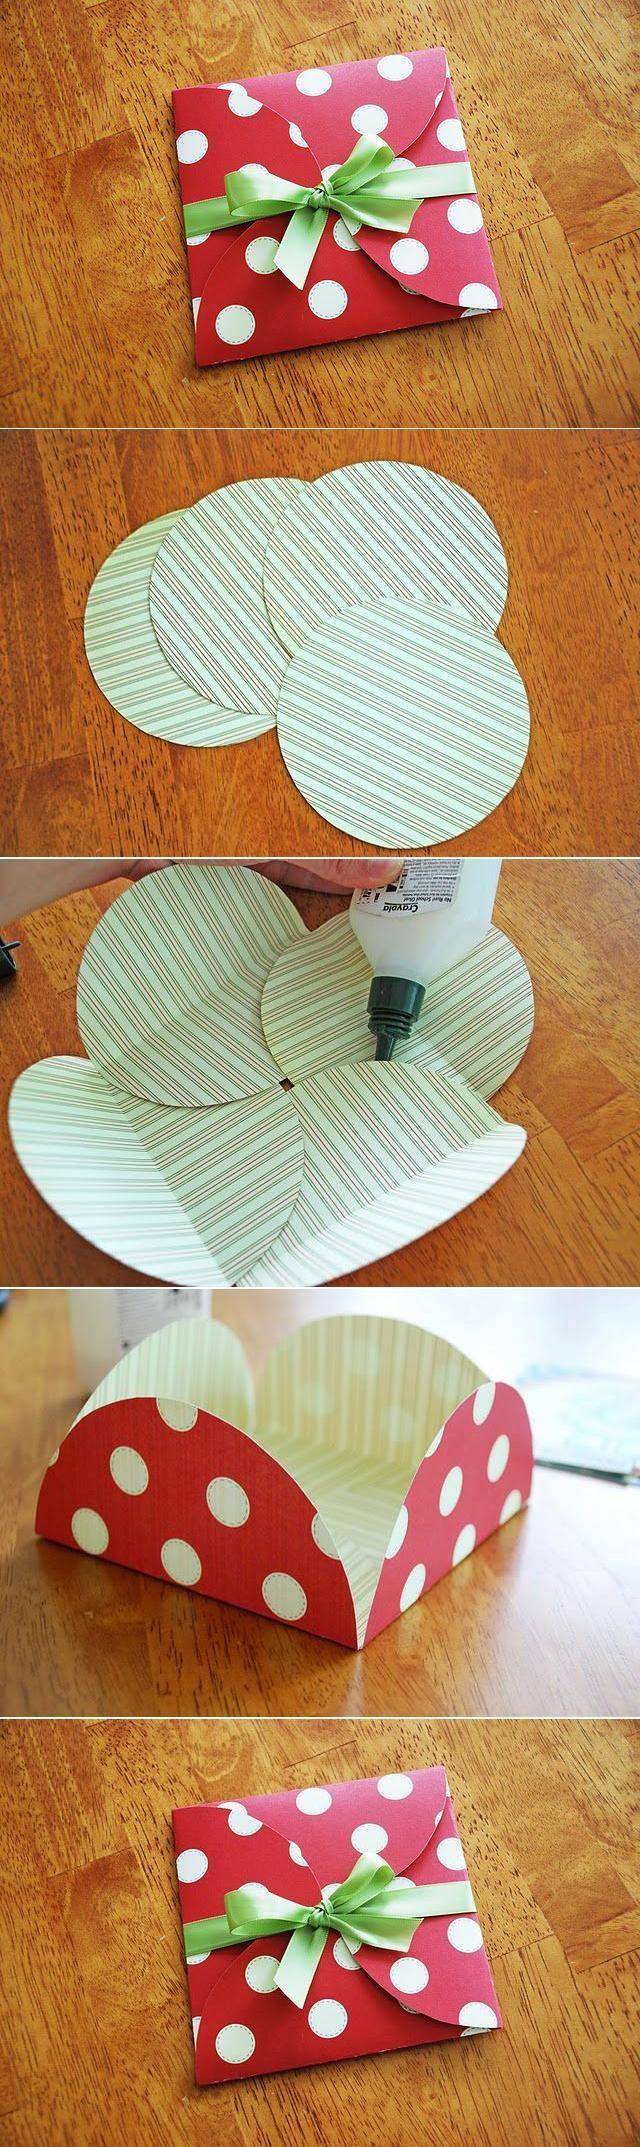 DIY Simple Envelope